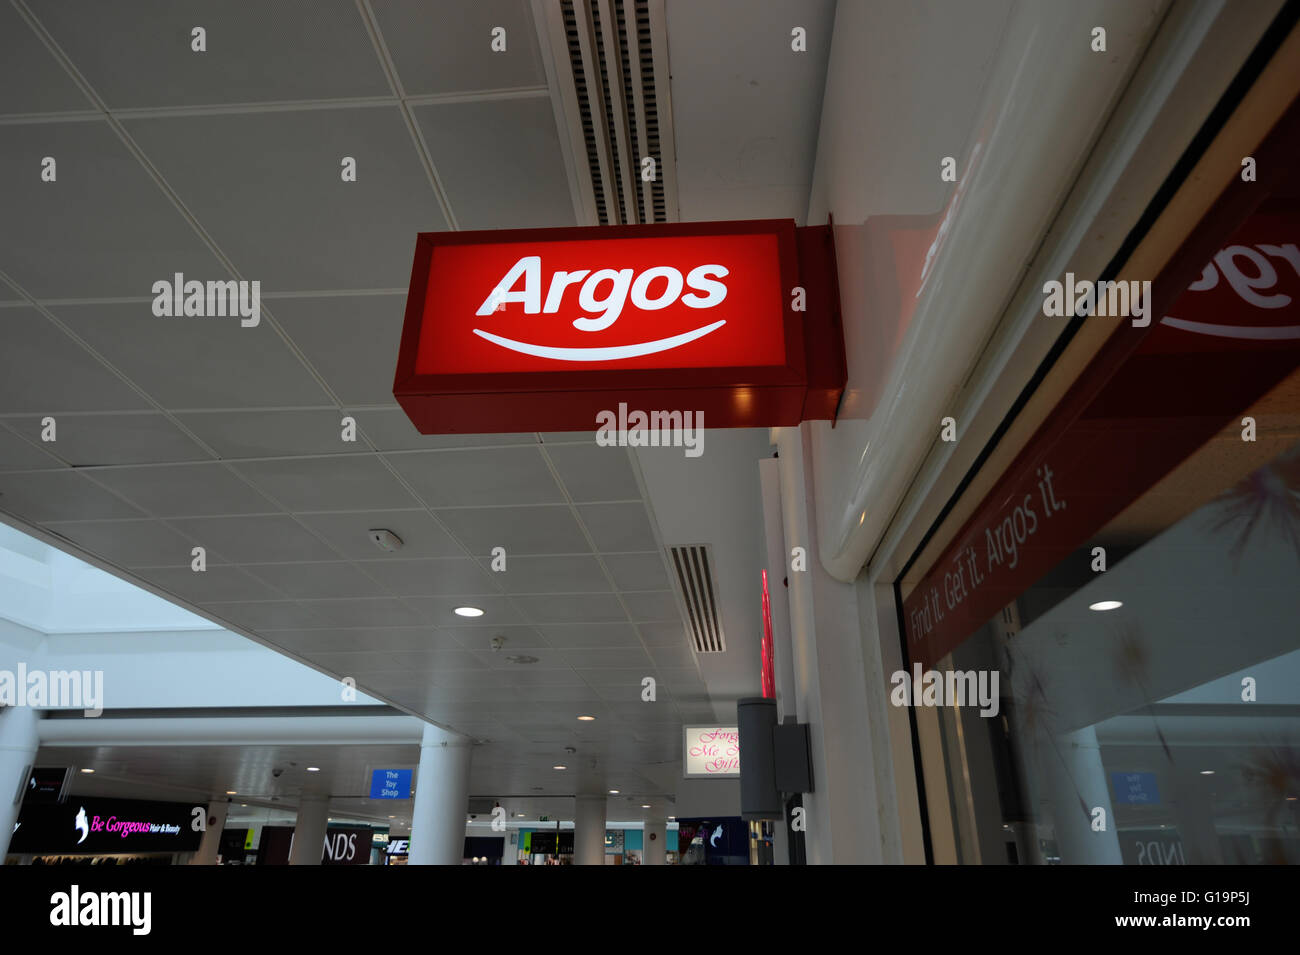 Argos,UK's leading digital retailer,electronics,UK - Stock Image